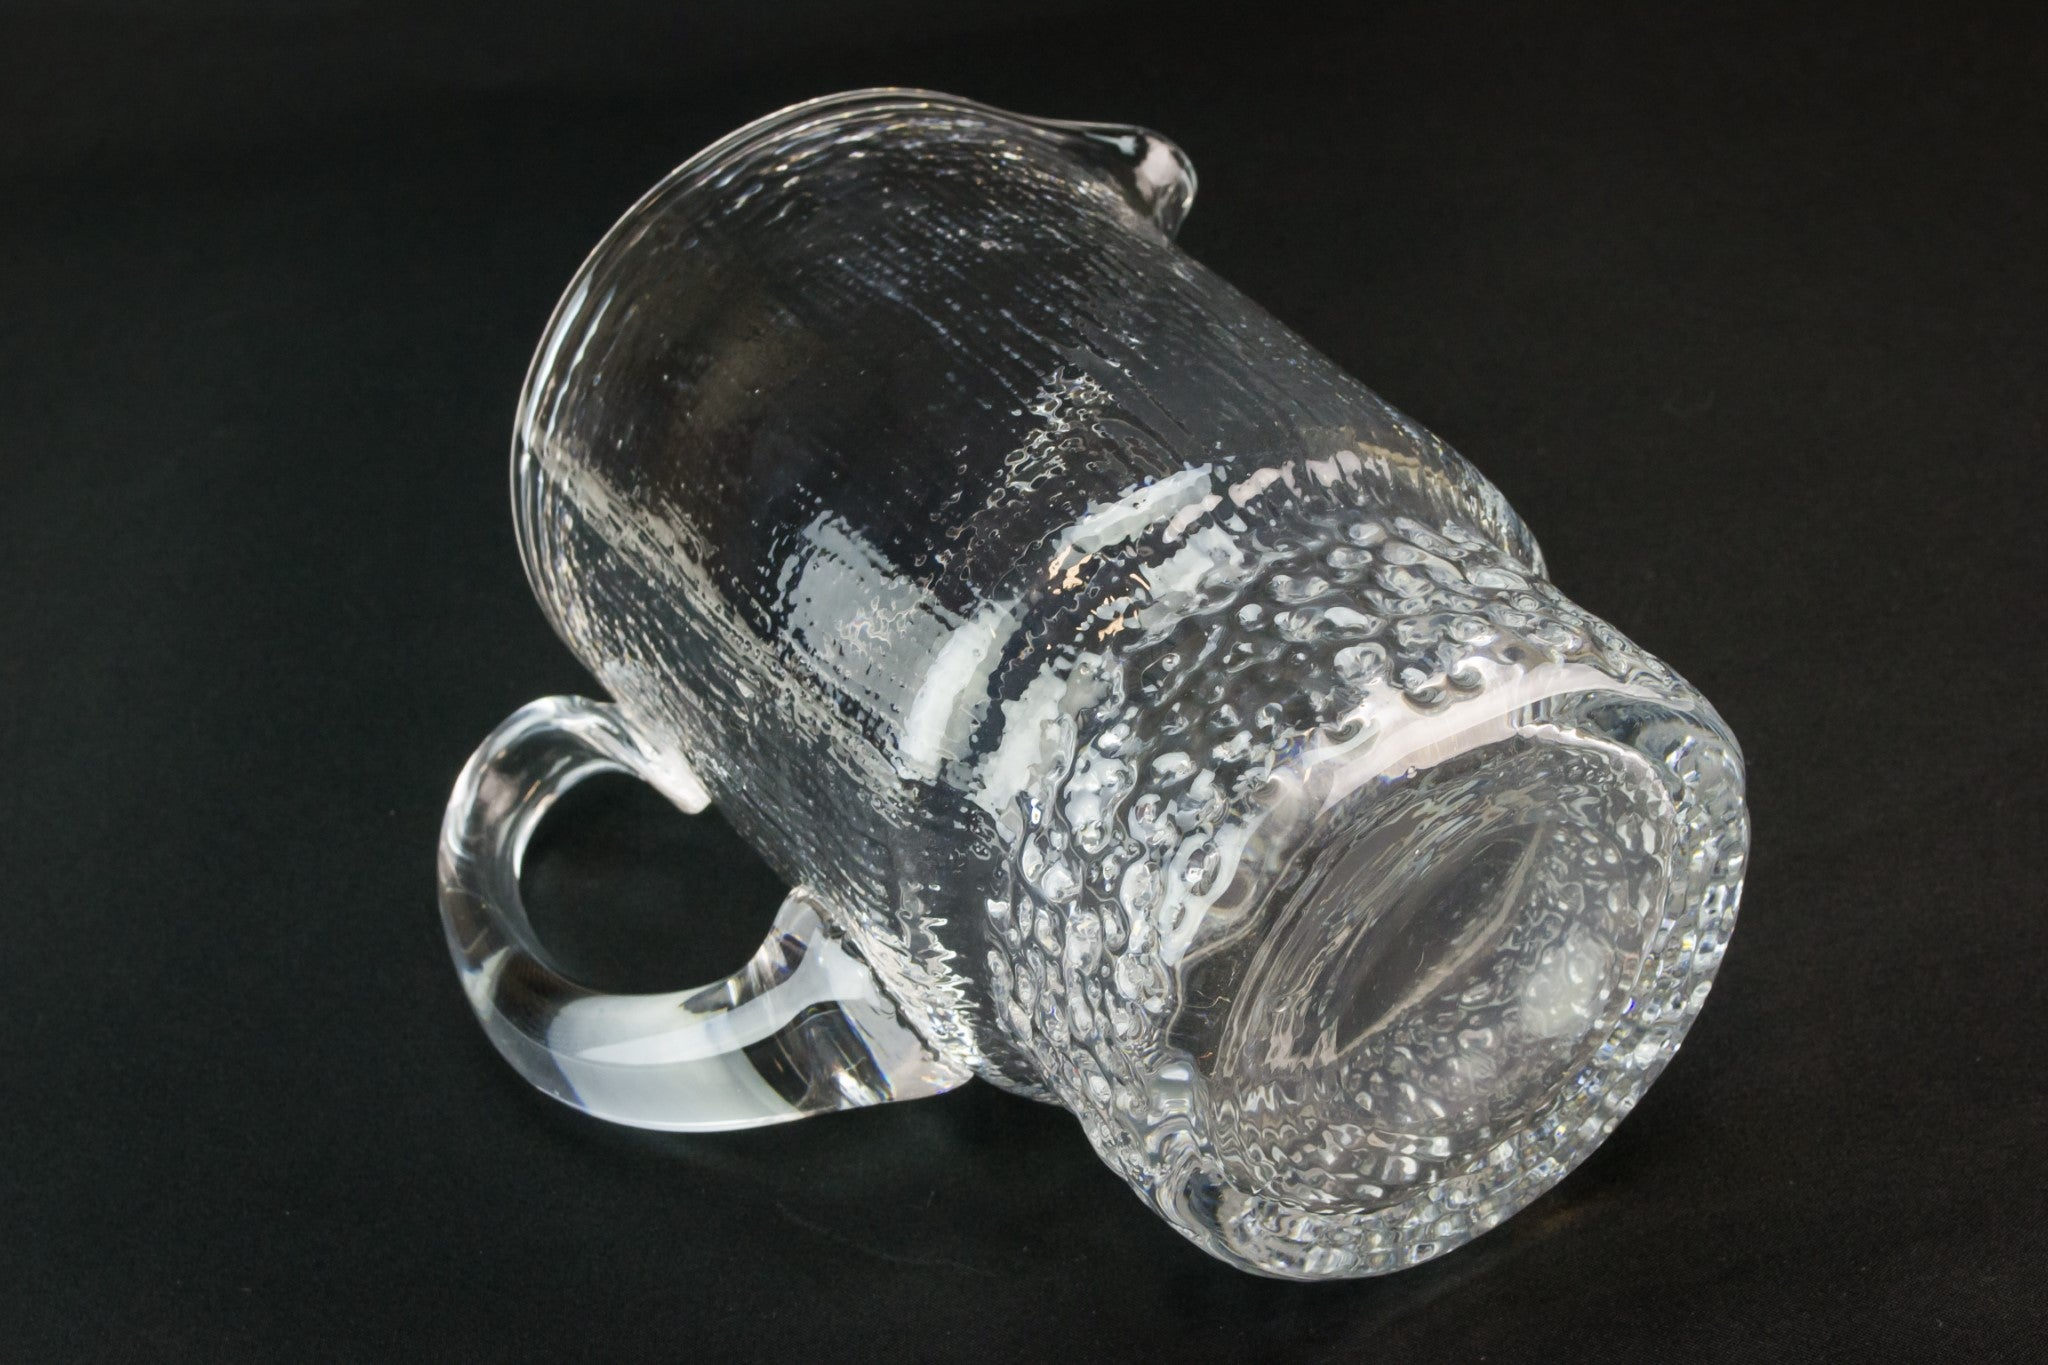 Frosted glass jug